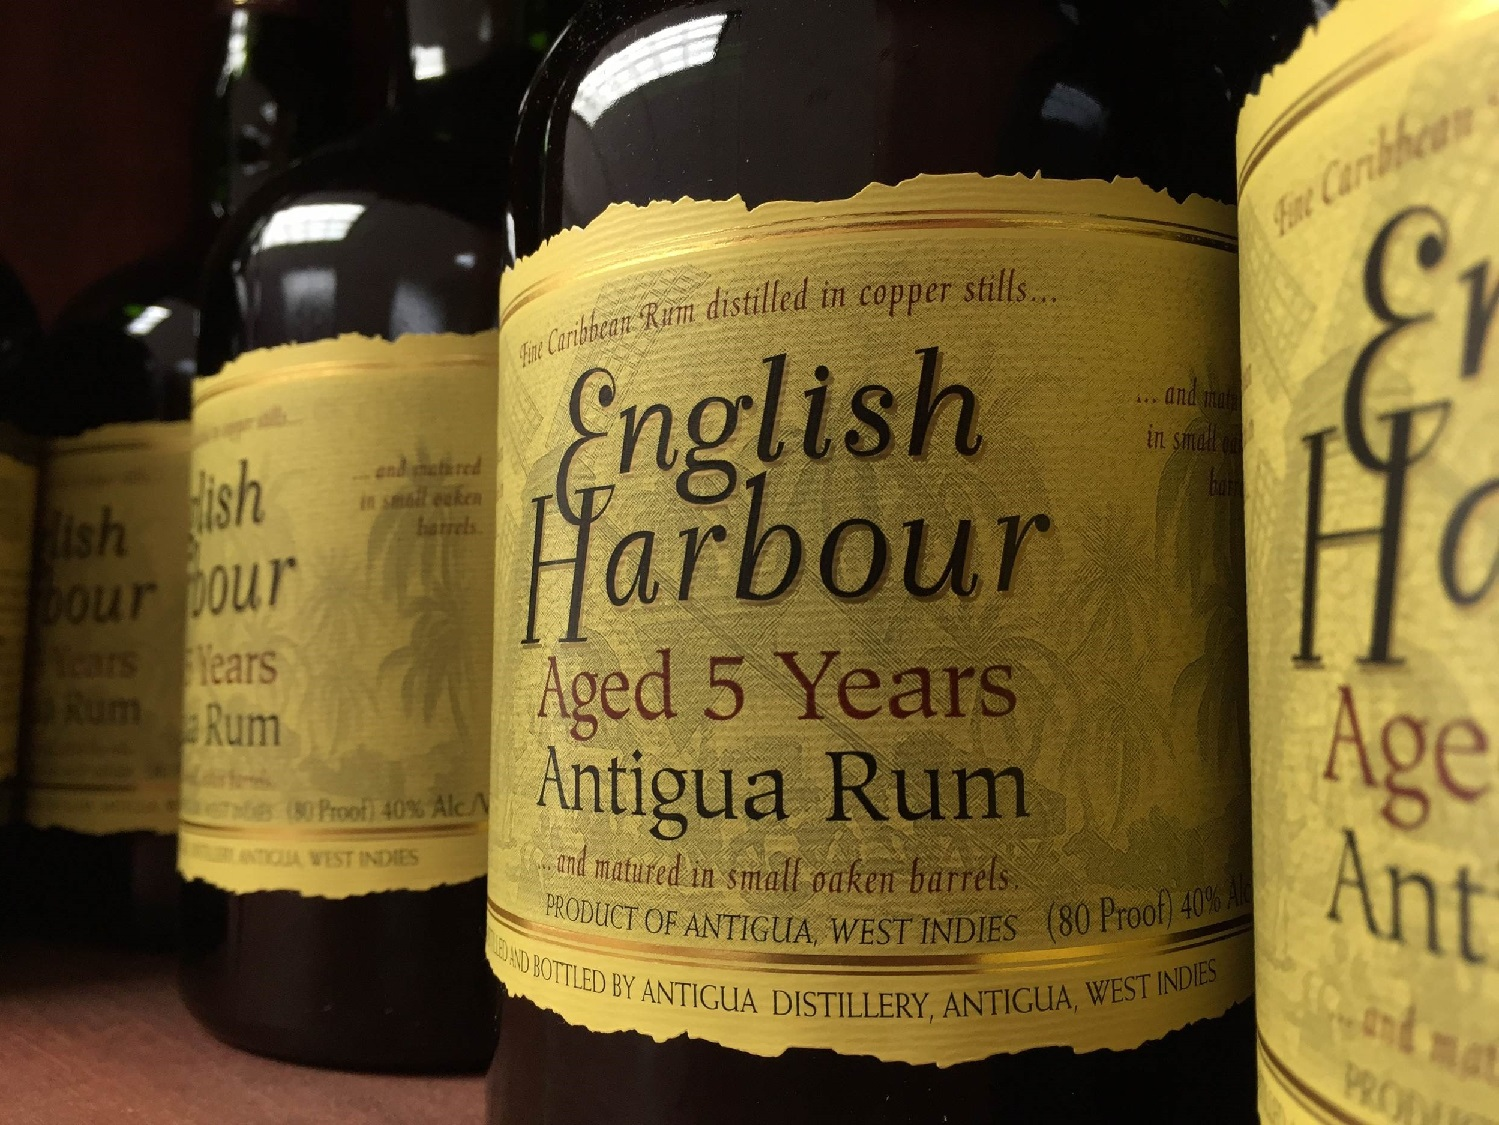 And the Winner of a Case of English Harbour 5 Year Old Rum is…